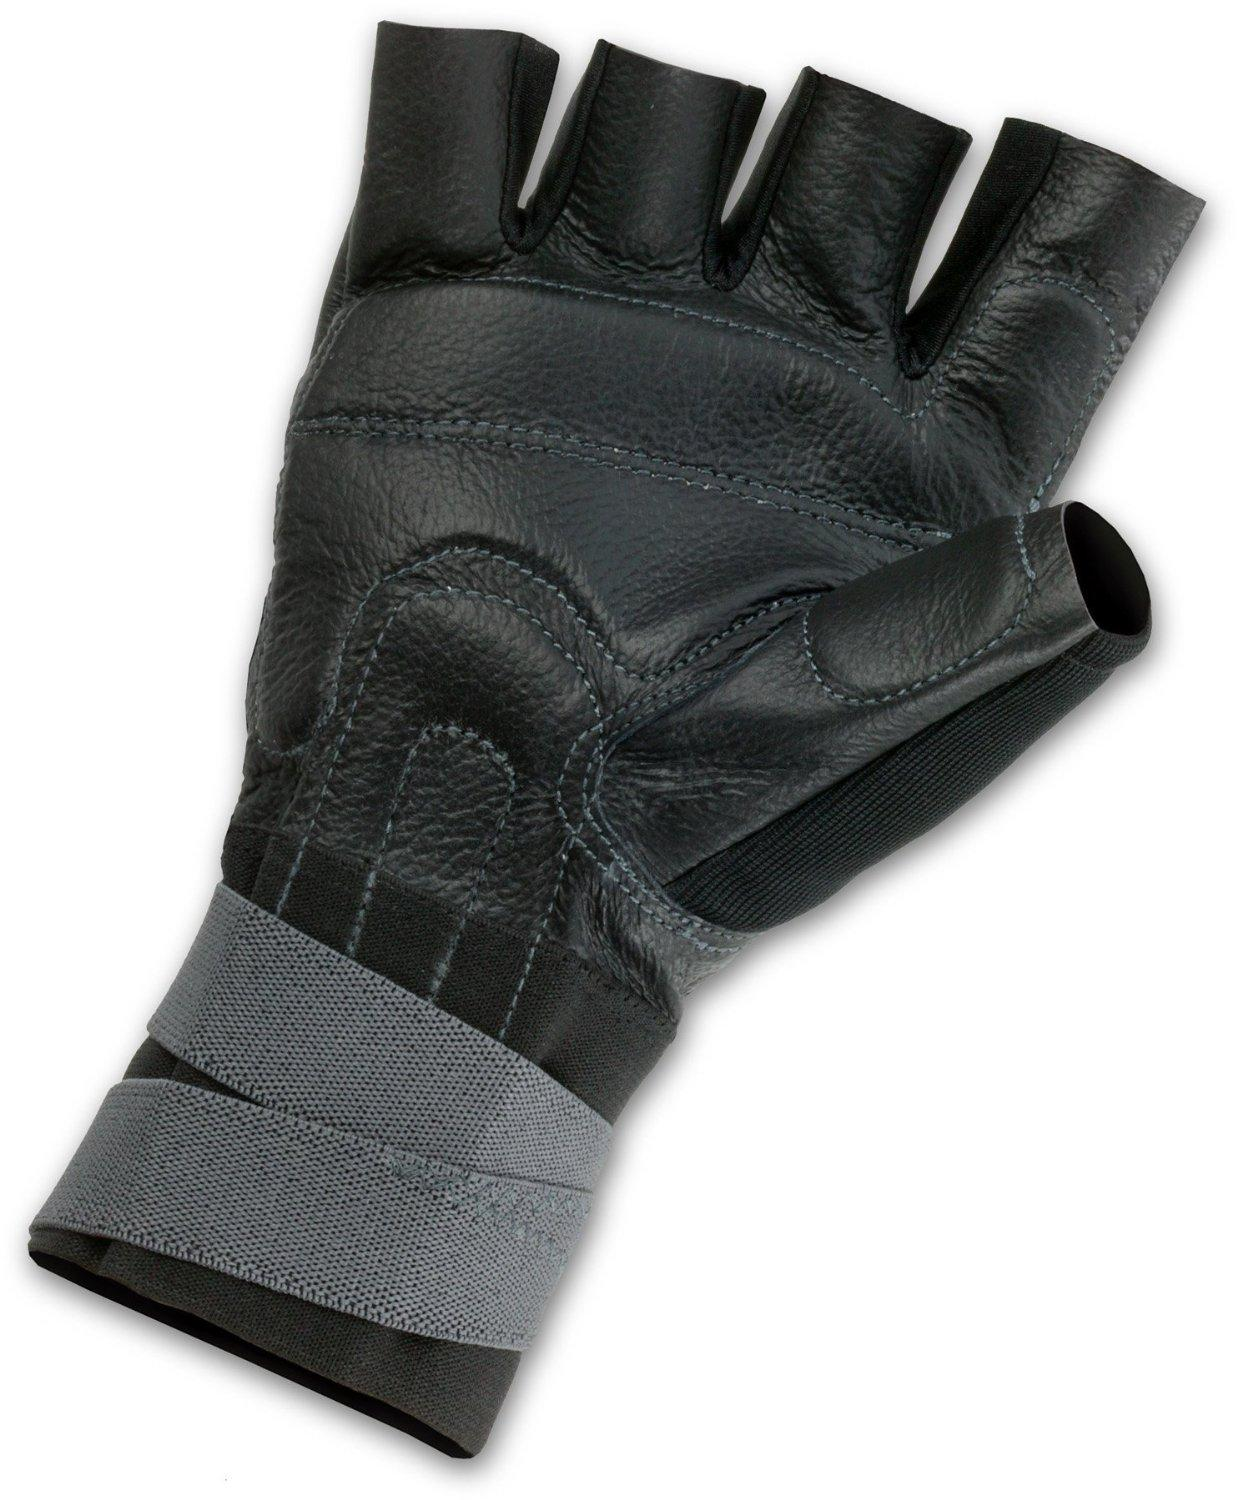 ProFlex 910 Impact Glove with Wrist Support, Black, Large